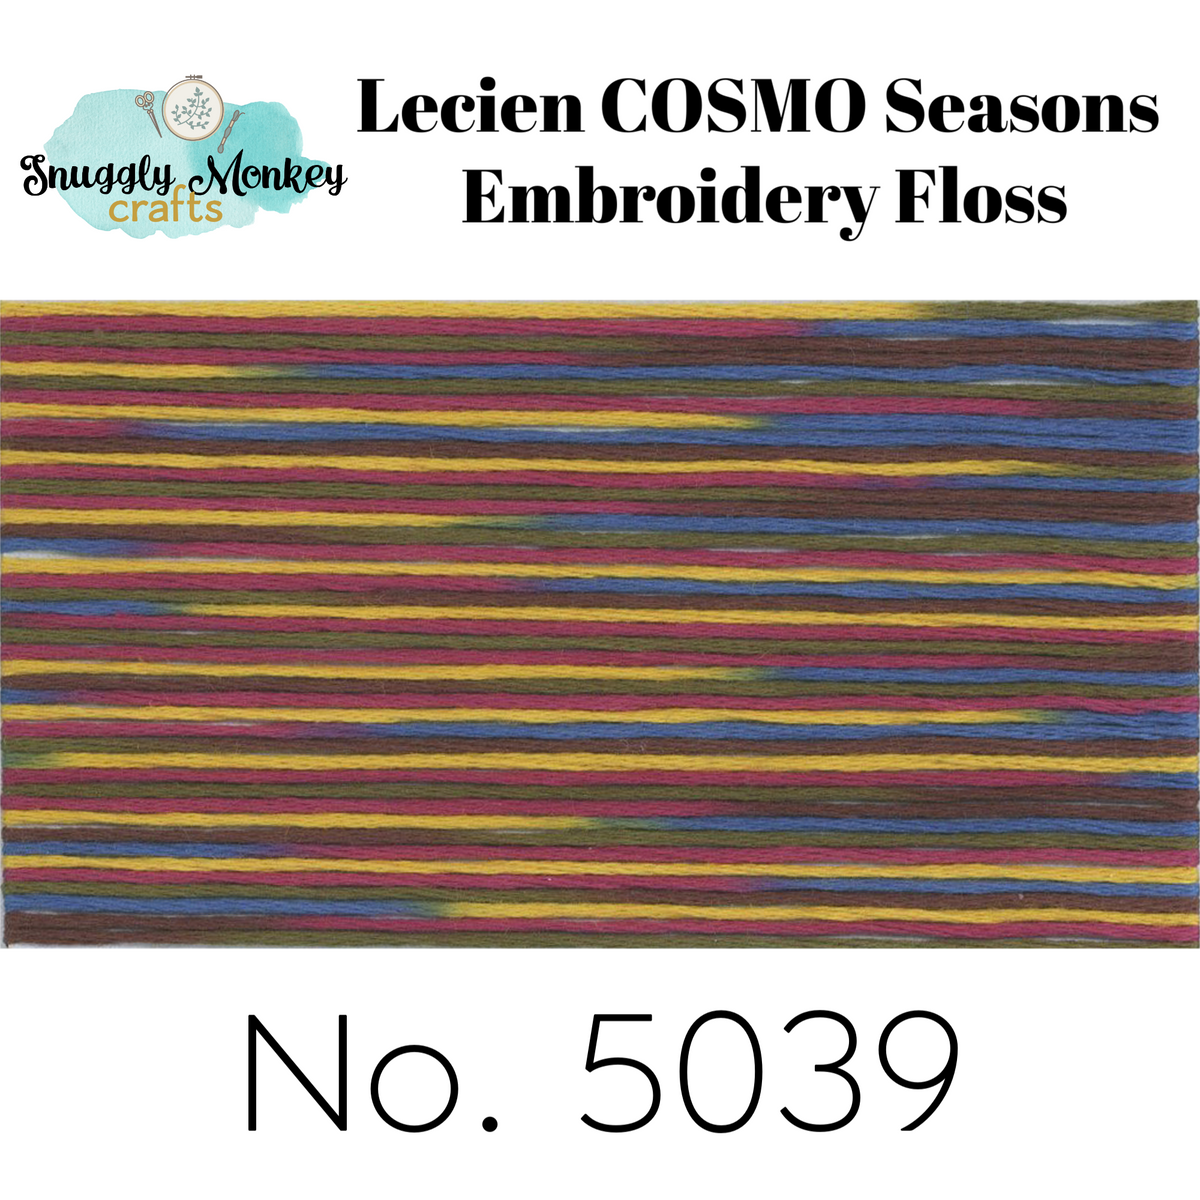 COSMO Seasons Variegated Embroidery Floss - 5036, 5037, 5038, 5039, 5040 Floss - Snuggly Monkey